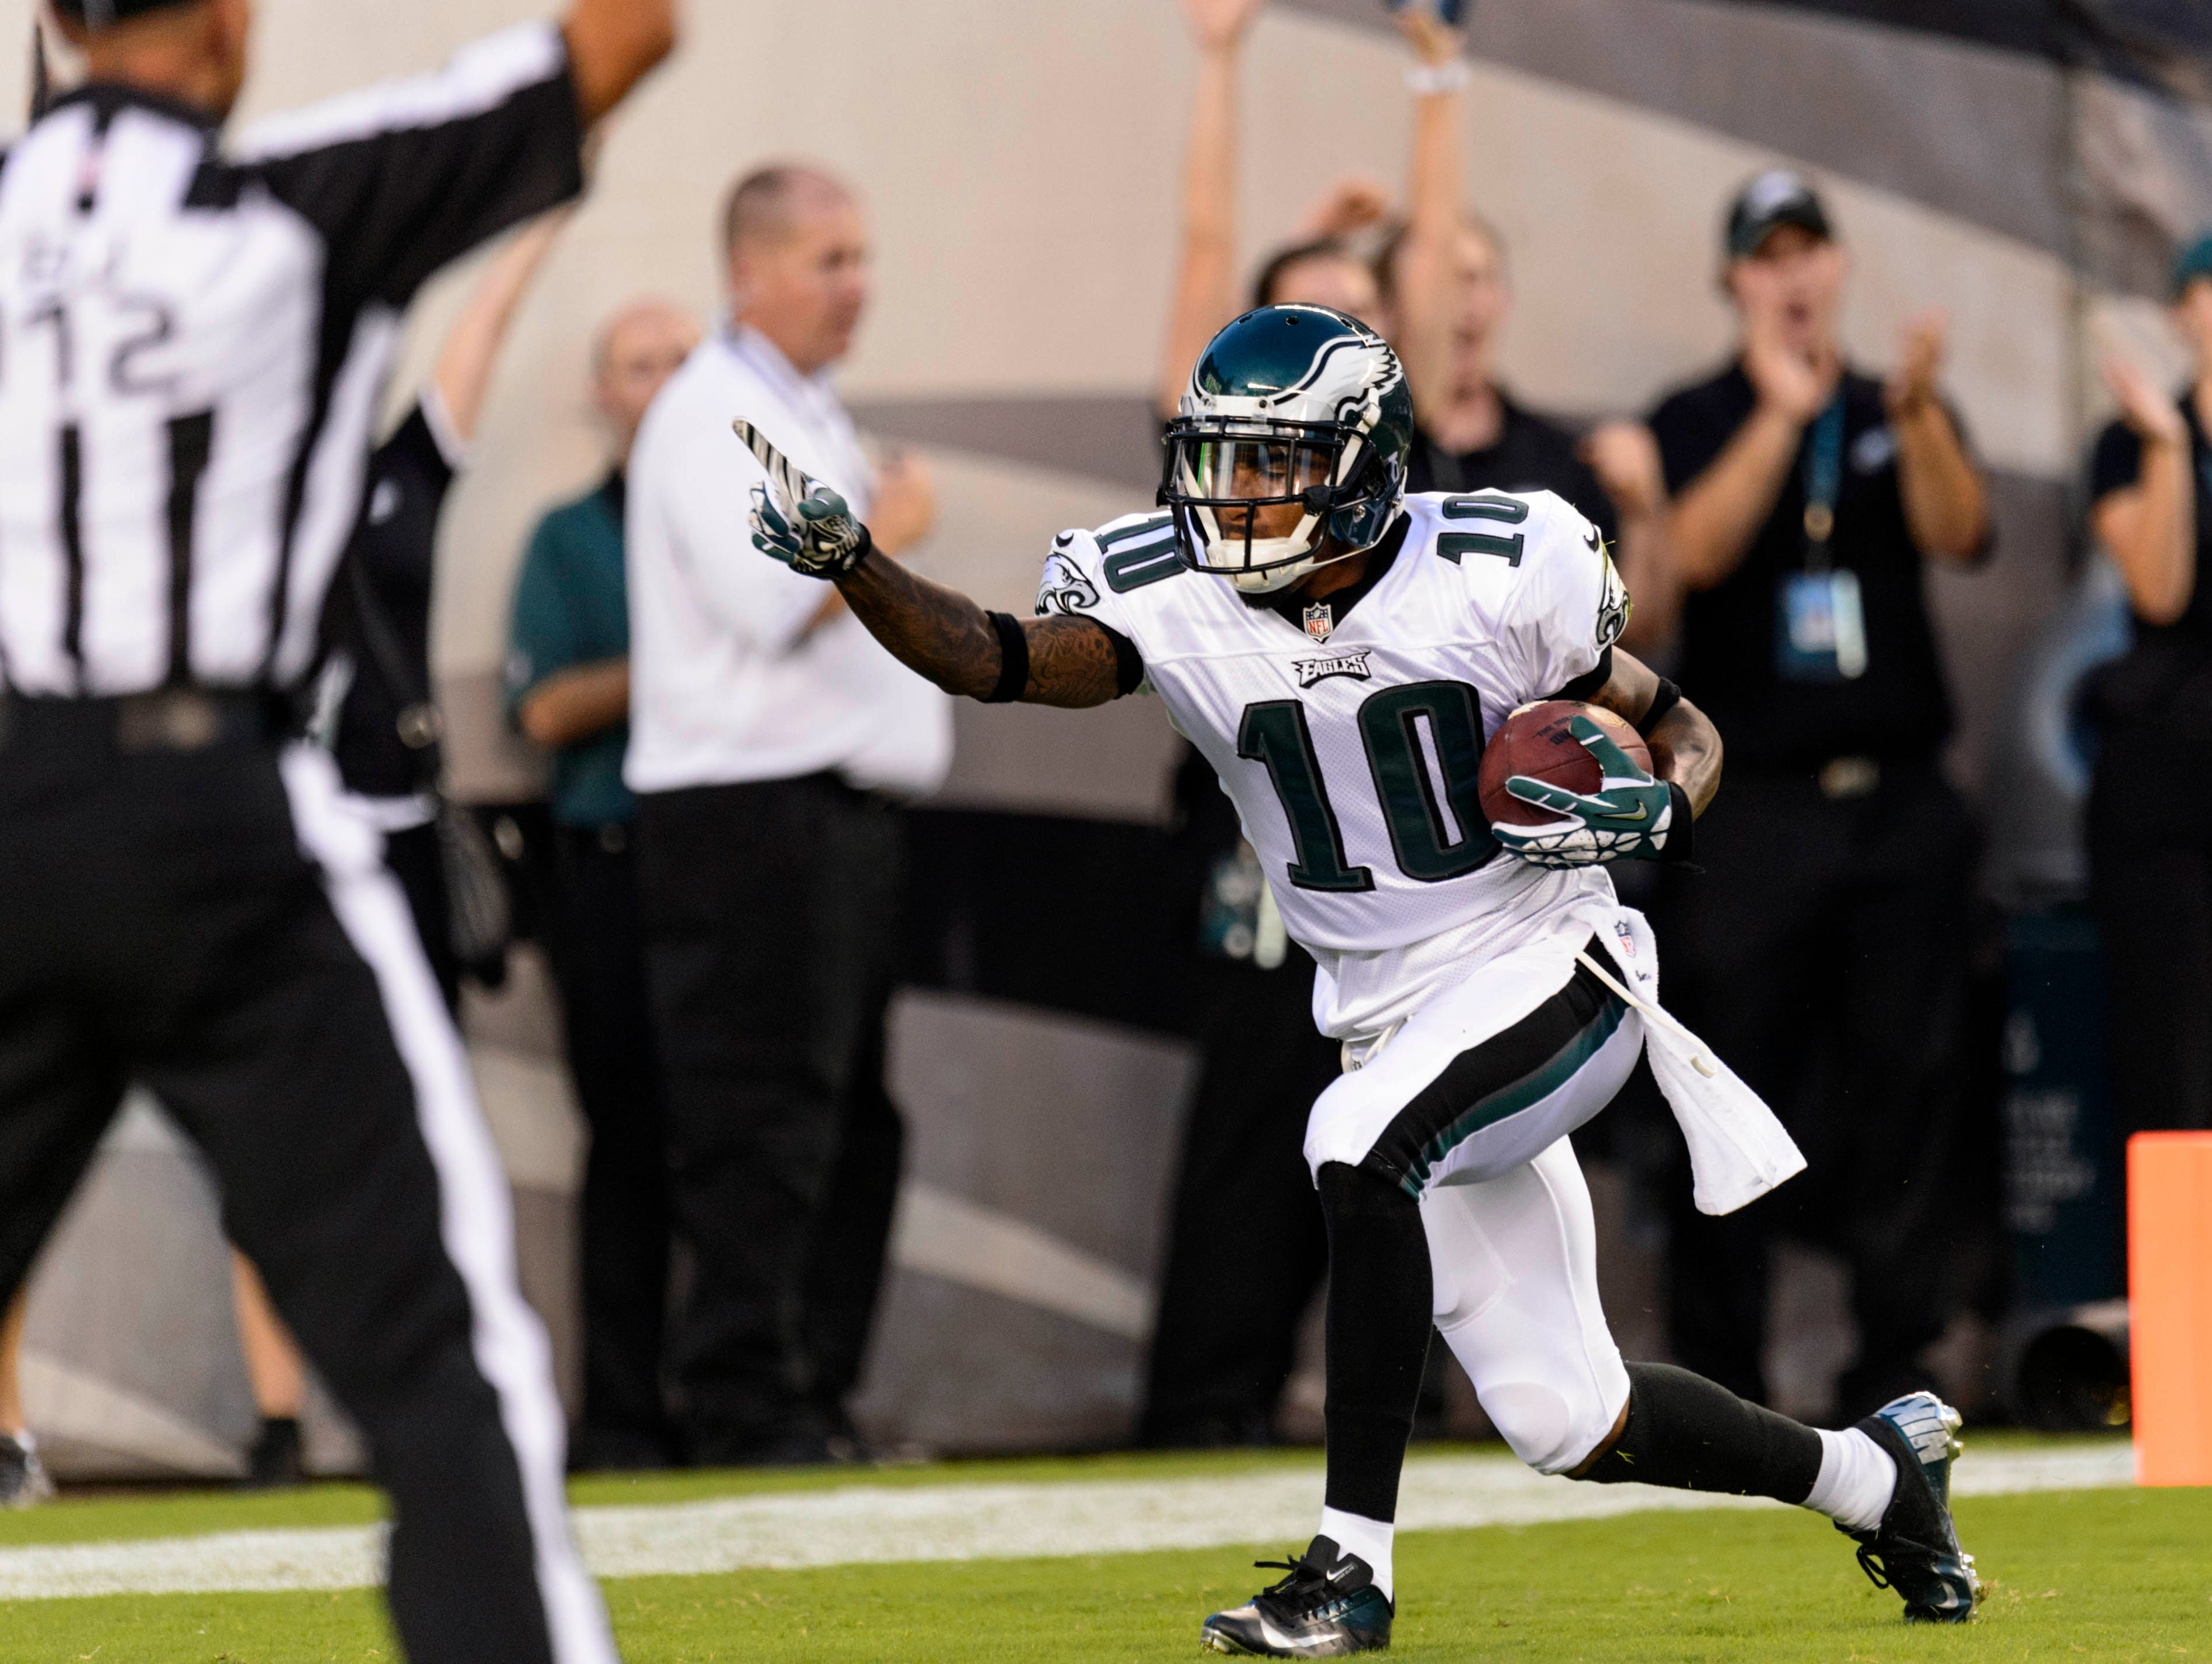 Philadelphia Eagles wide receiver DeSean Jackson (10) carries for a touchdown during the first quarter against the New England Patriots at Lincoln Financial Field.